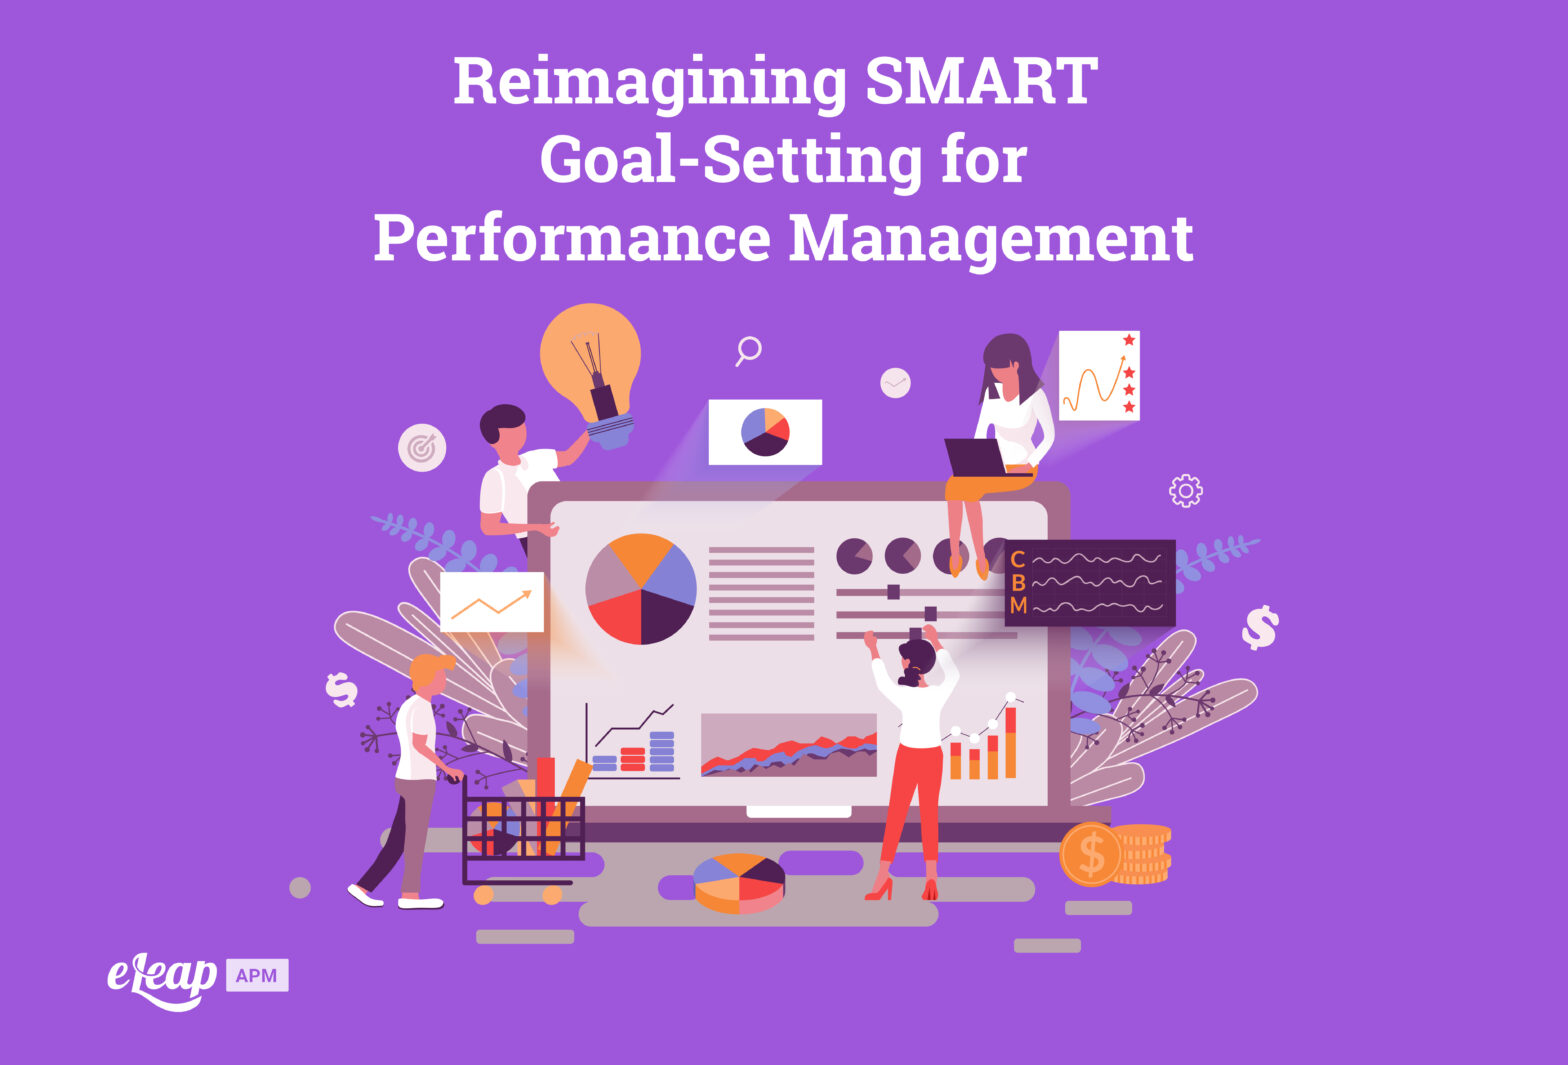 Reimagining SMART Goal-Setting for Performance Management